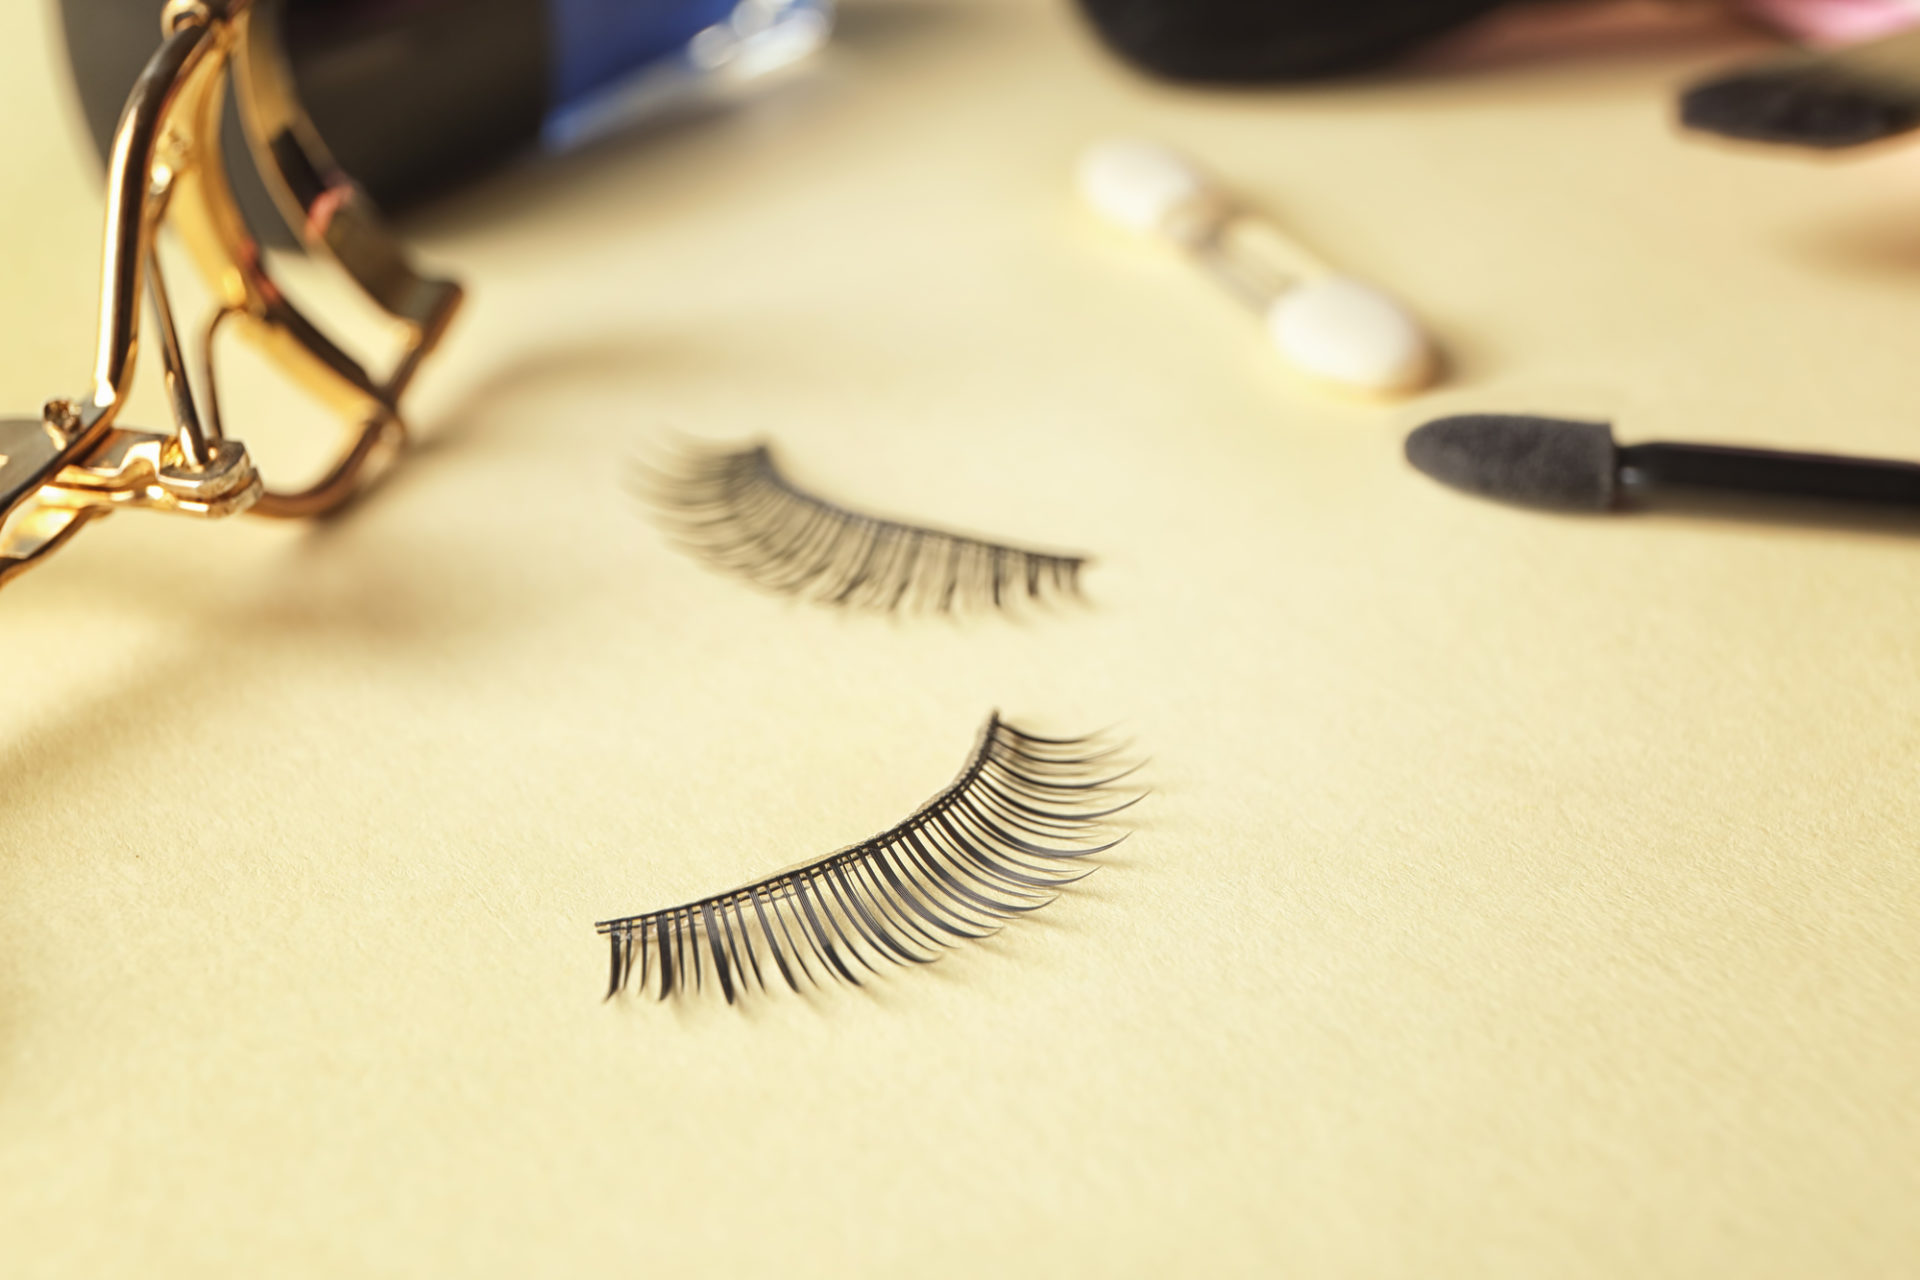 d842fc1a38d False Eyelashes 101: Everything You Need to Know About Falsies ...